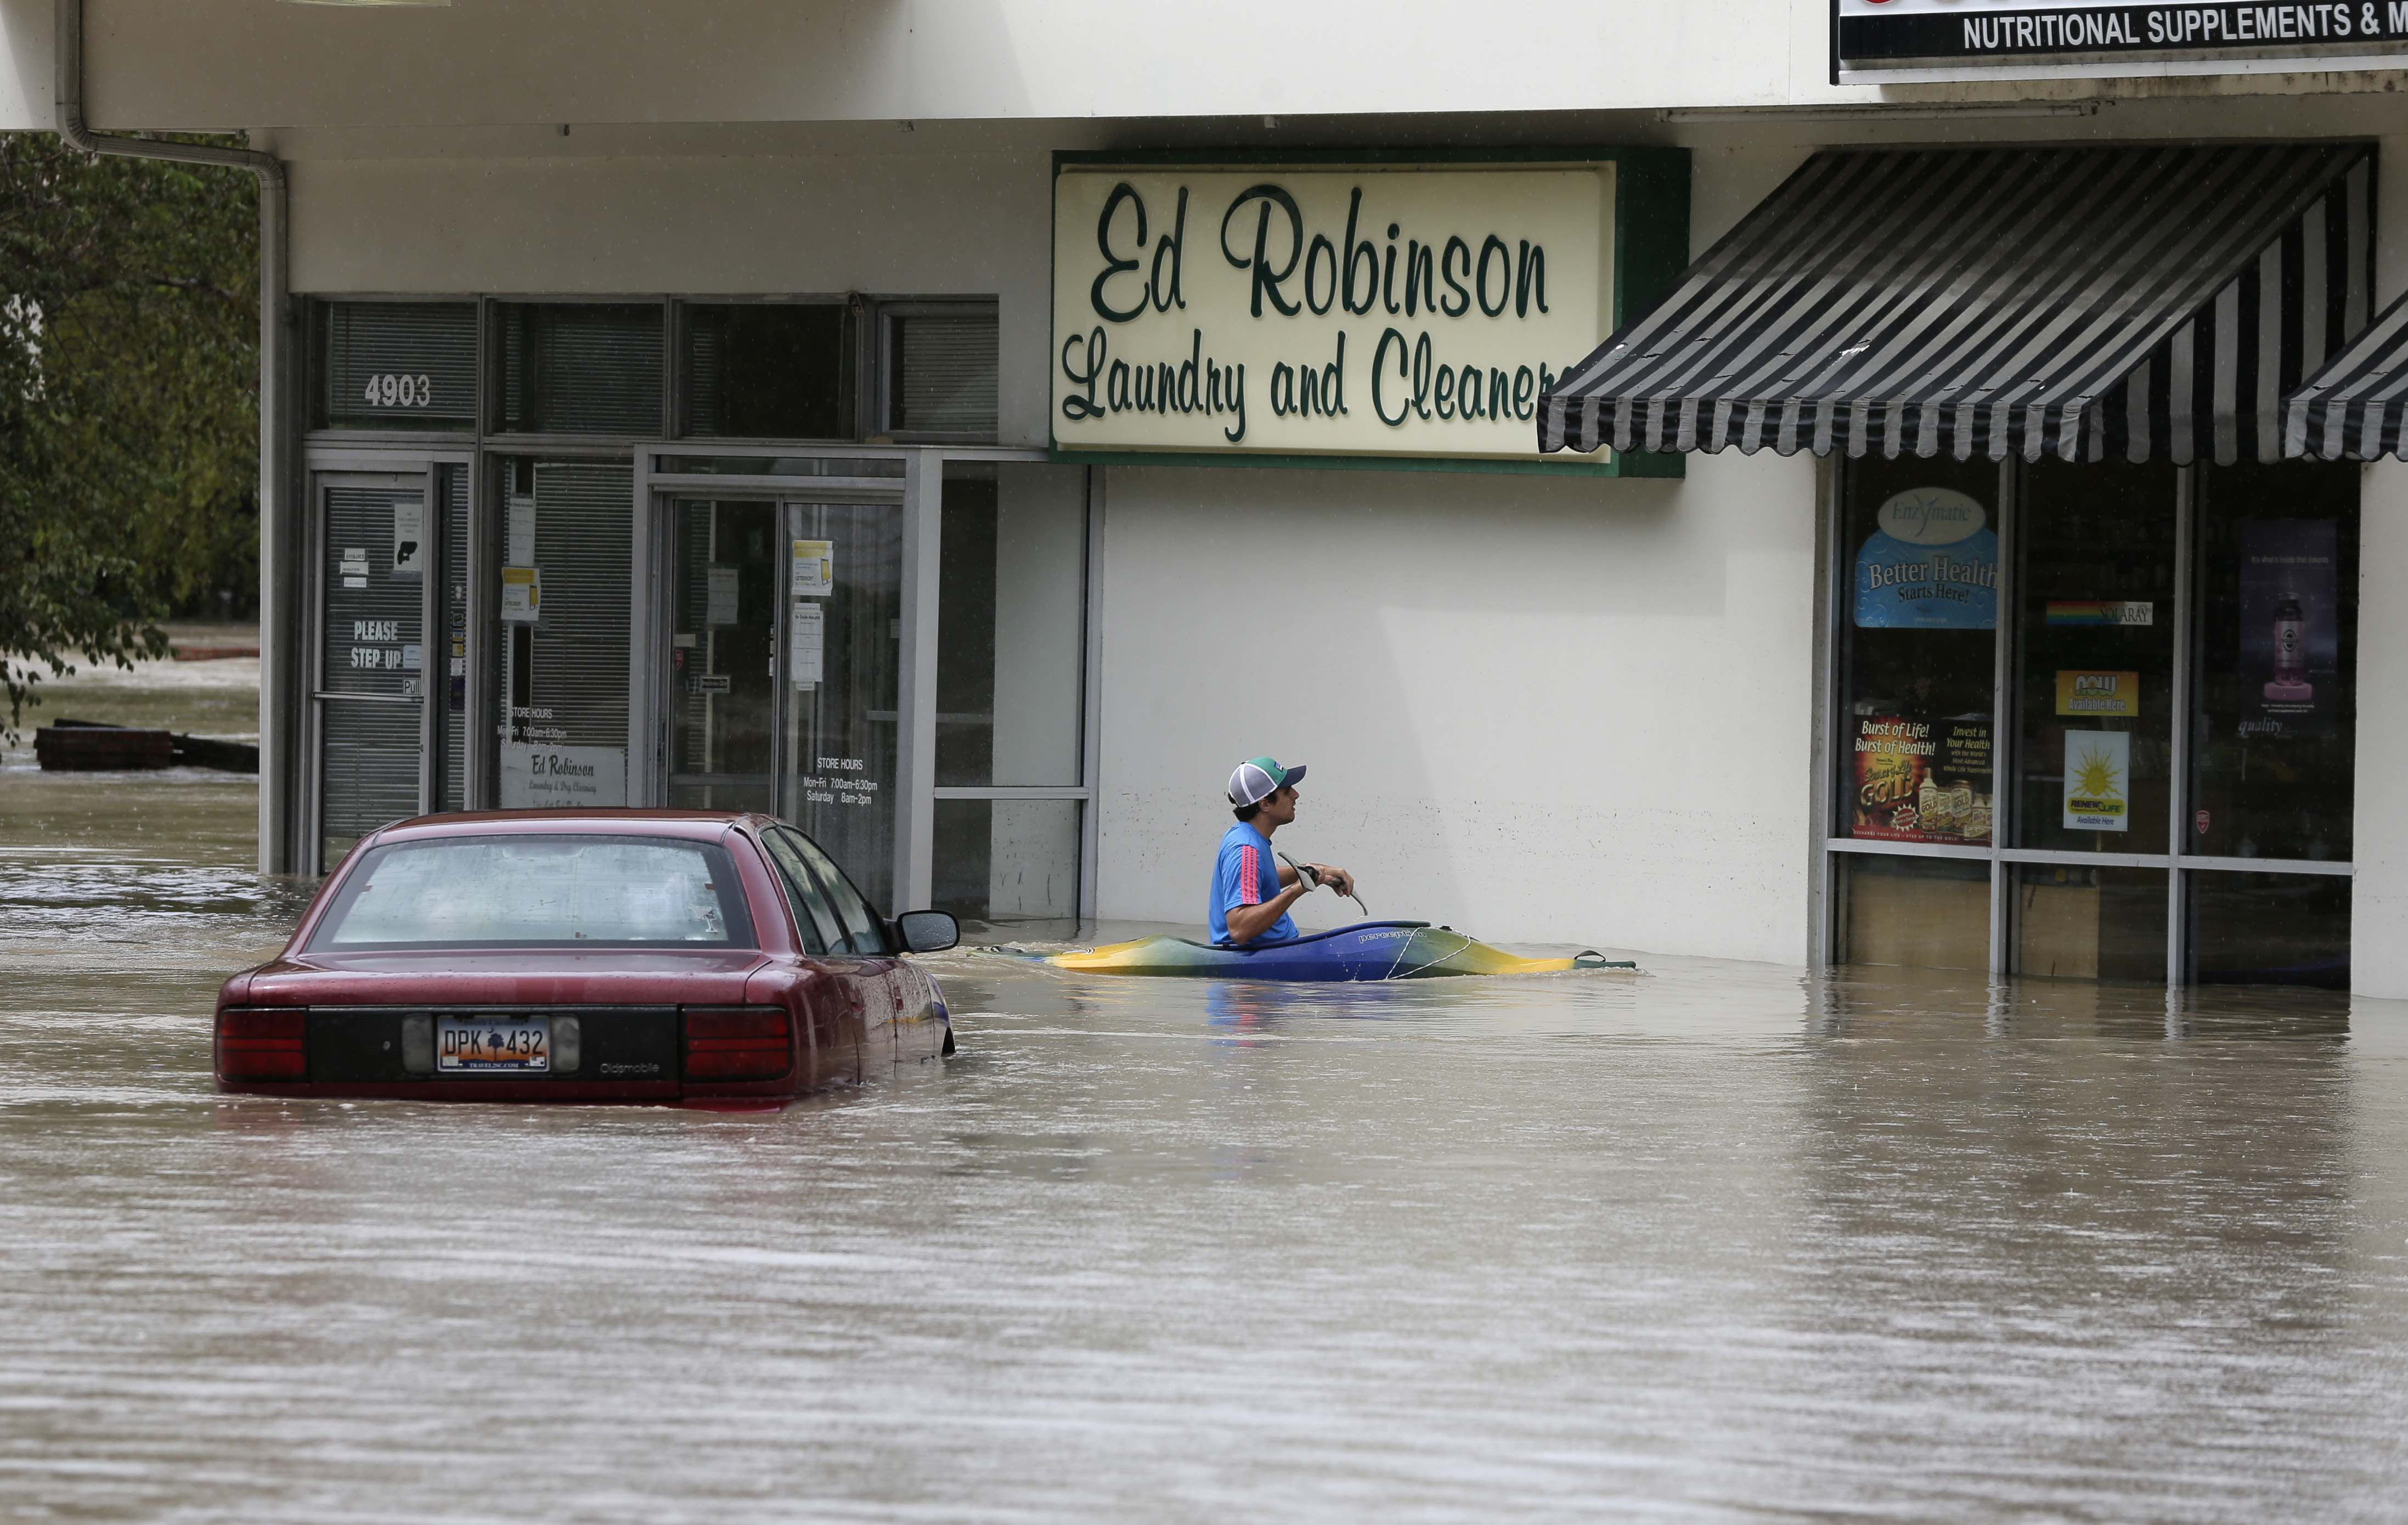 Jordan Bennett, of Rock Hill, S.C., paddles up to a flooded store in Columbia, S.C., Sunday, Oct. 4, 2015.